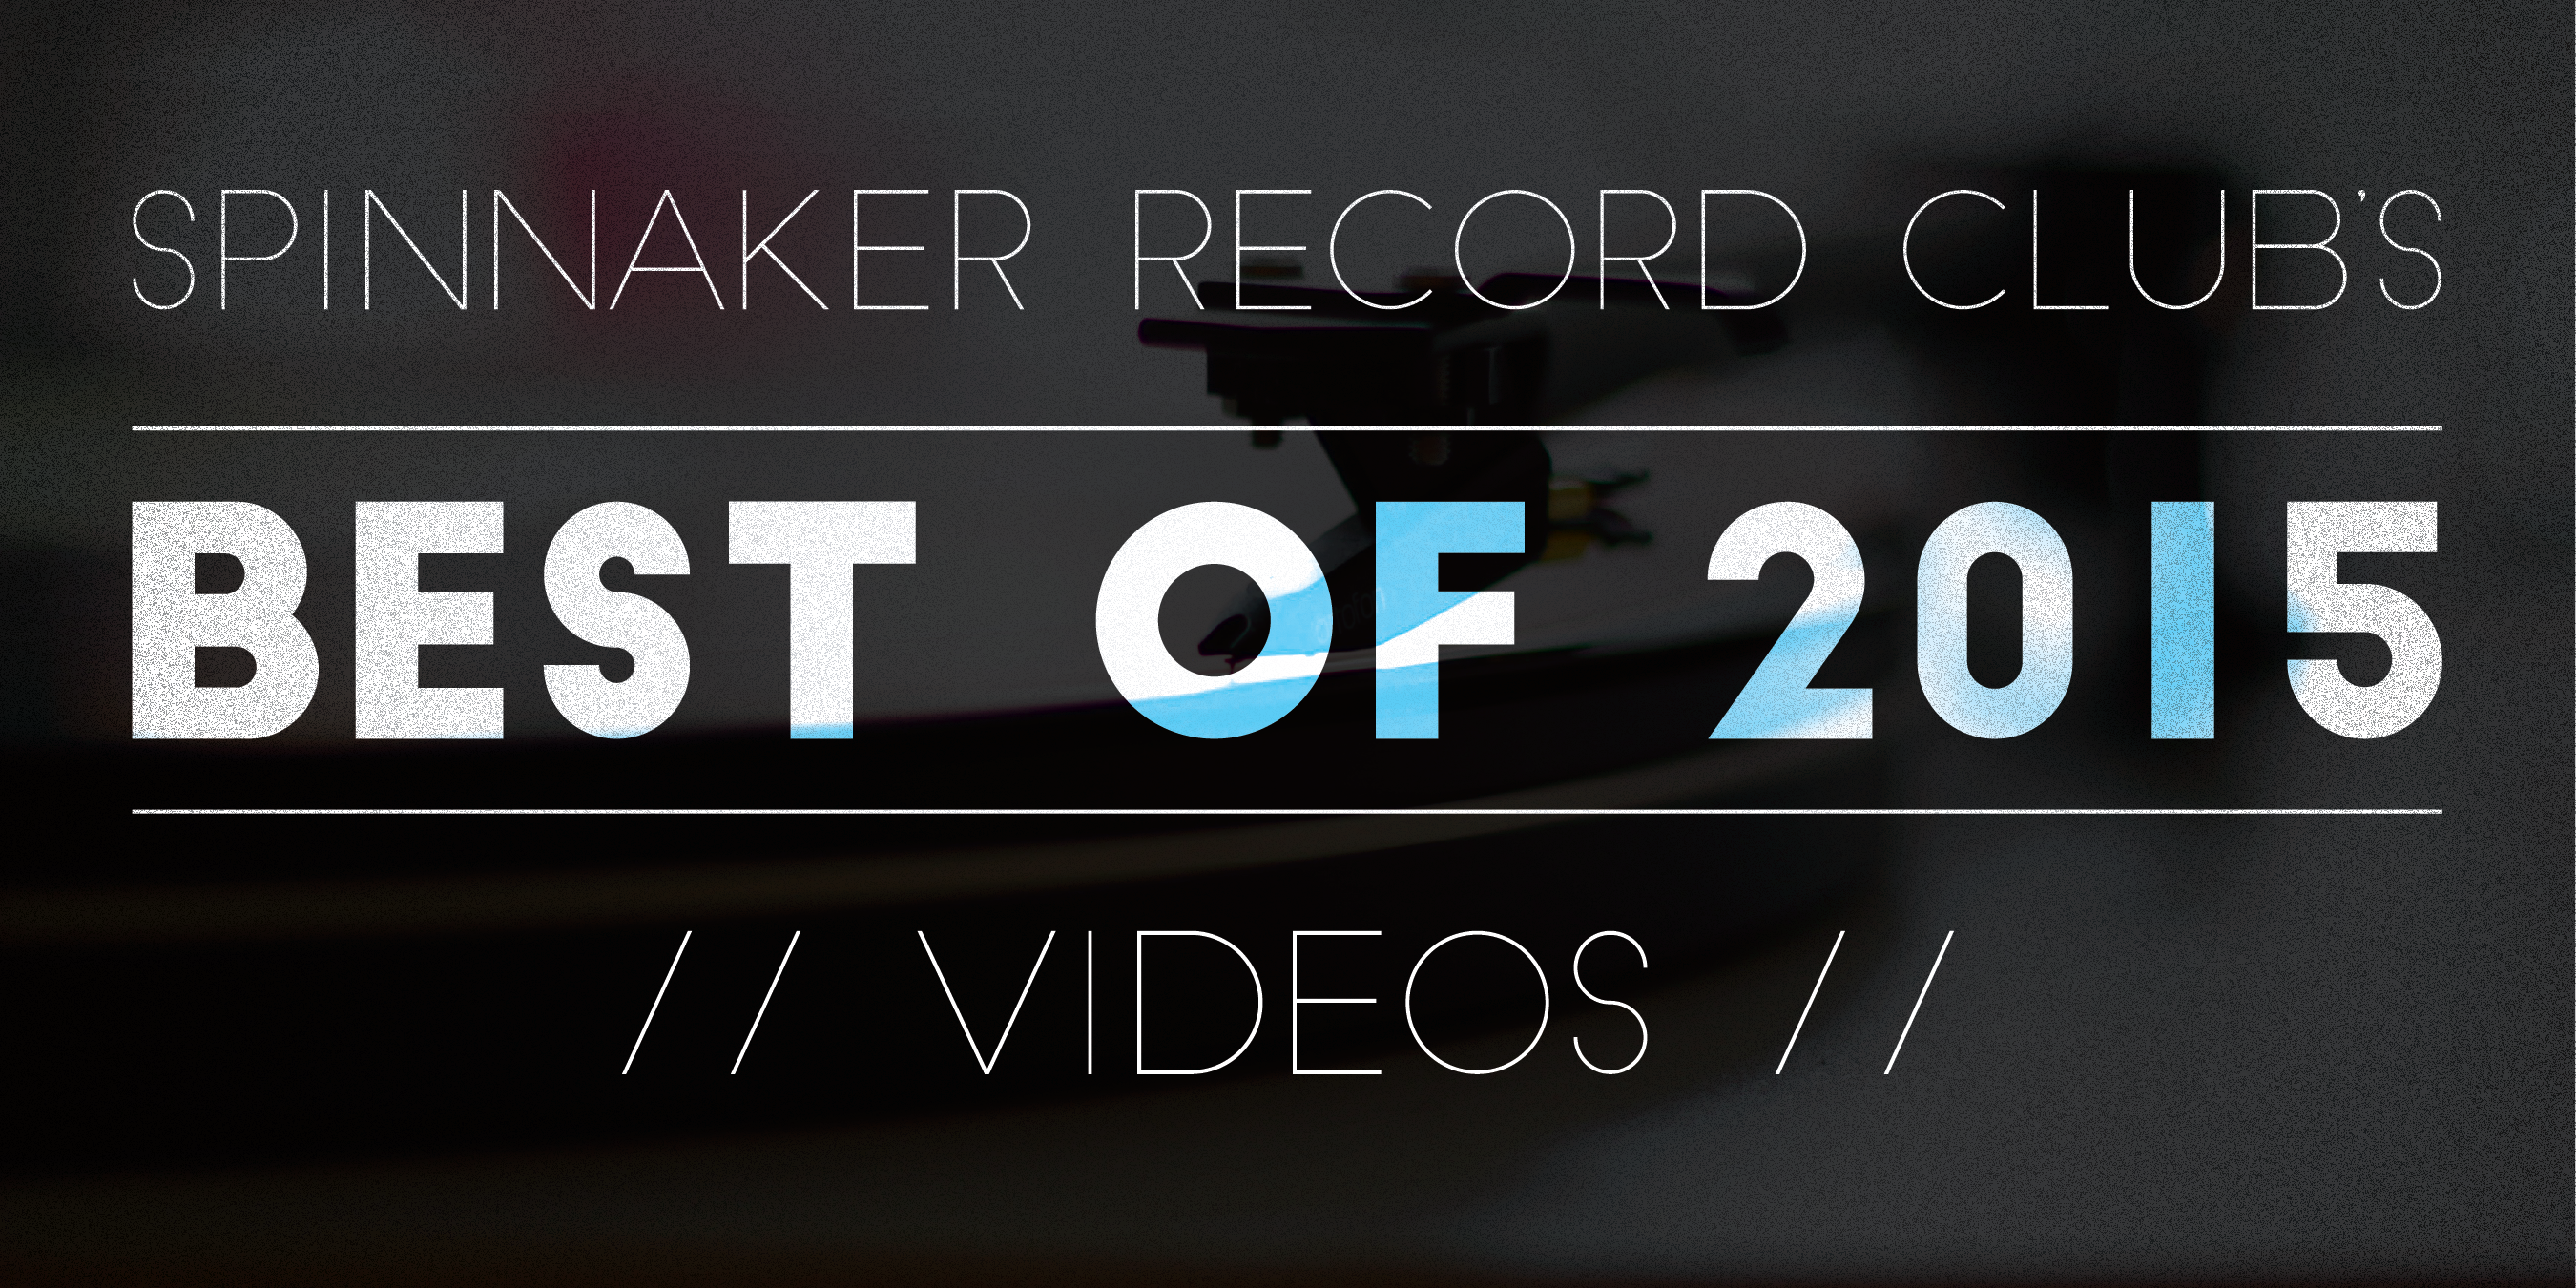 Spinnaker Record Club's Best of 2015: Videos